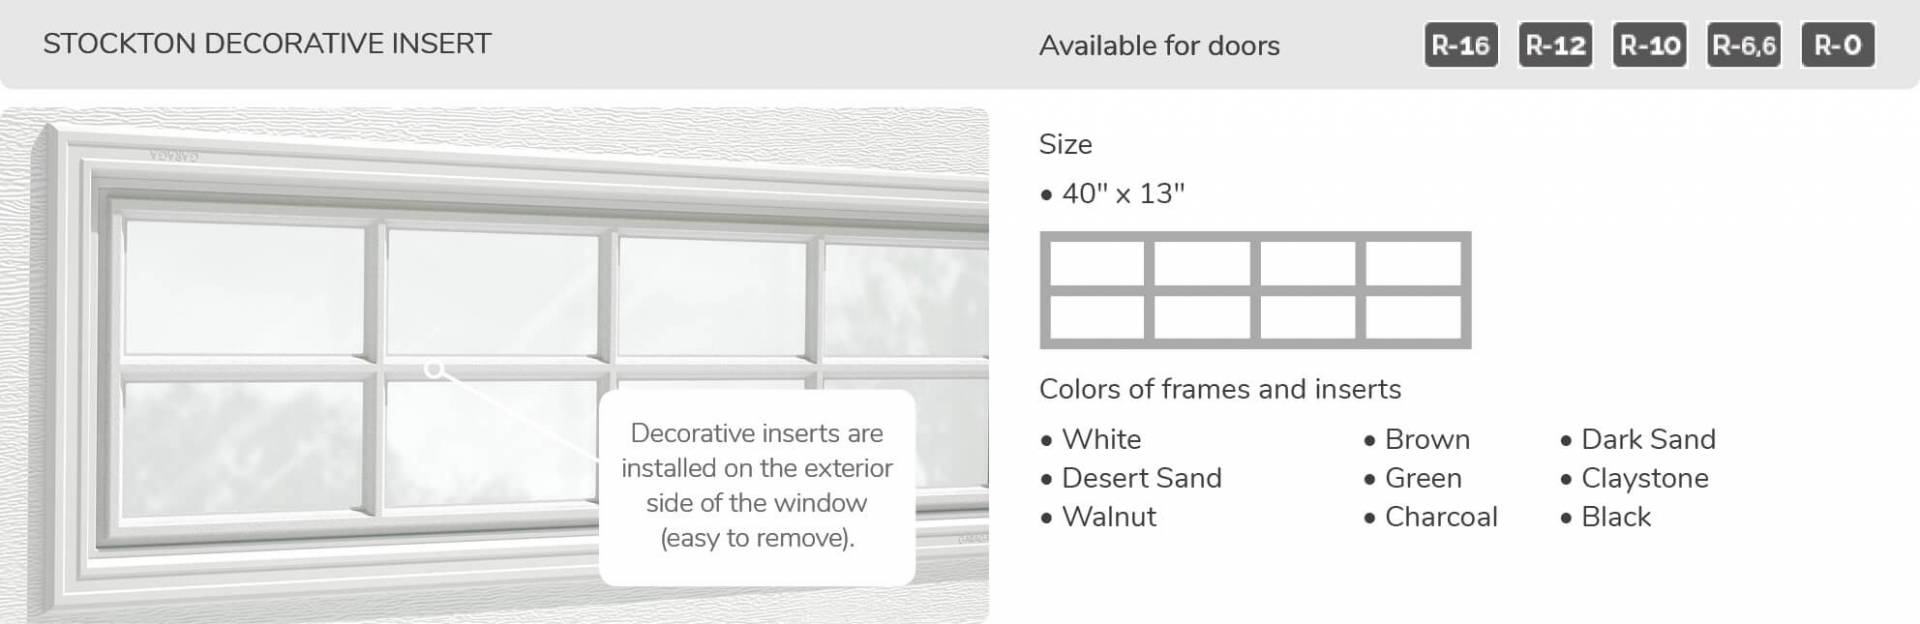 Stockton Decorative Insert, 40' x 13', available for doors R-16, R-12, R-10, R-6,6 and R-0